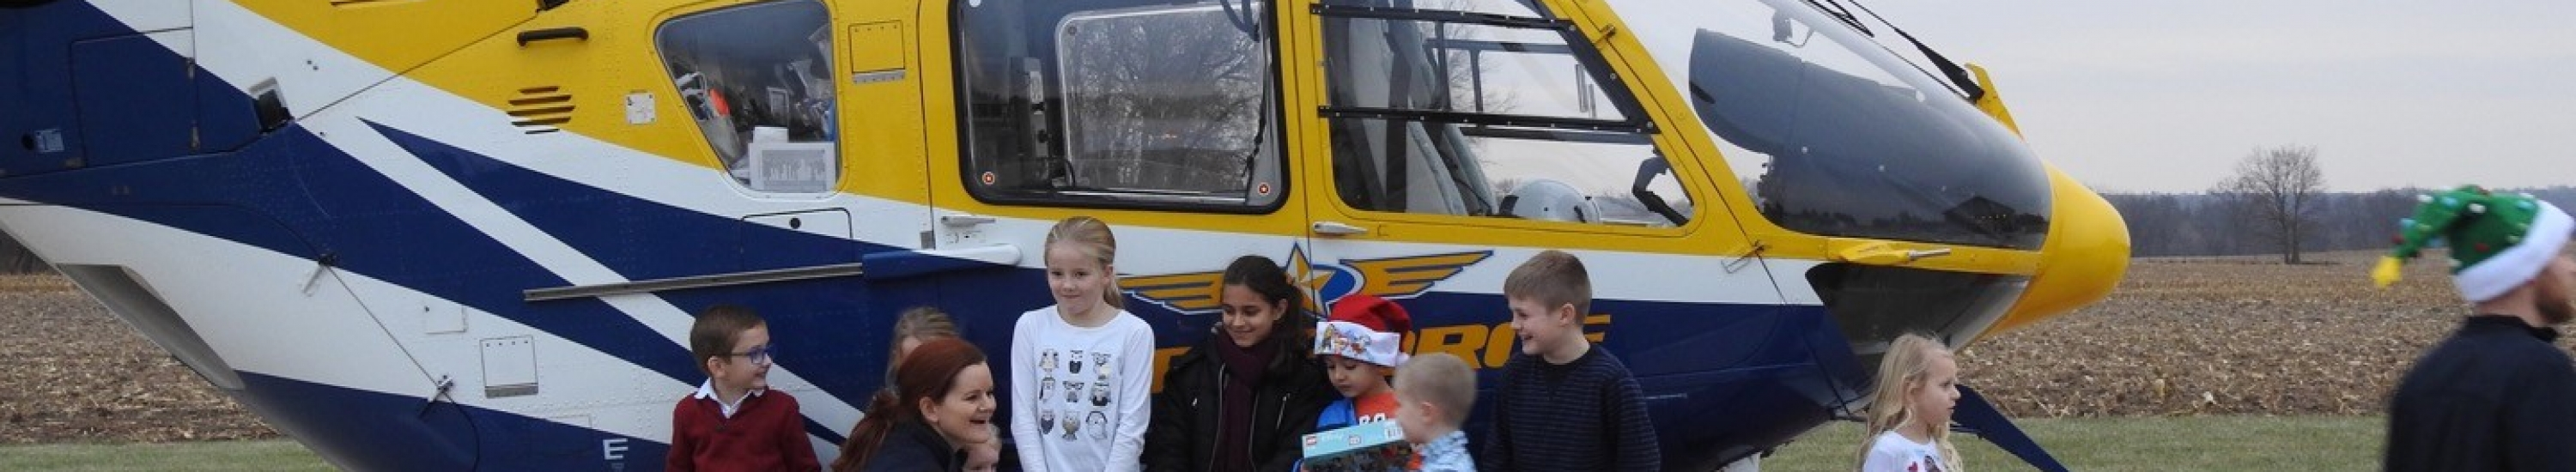 children in front of medforce aircraft